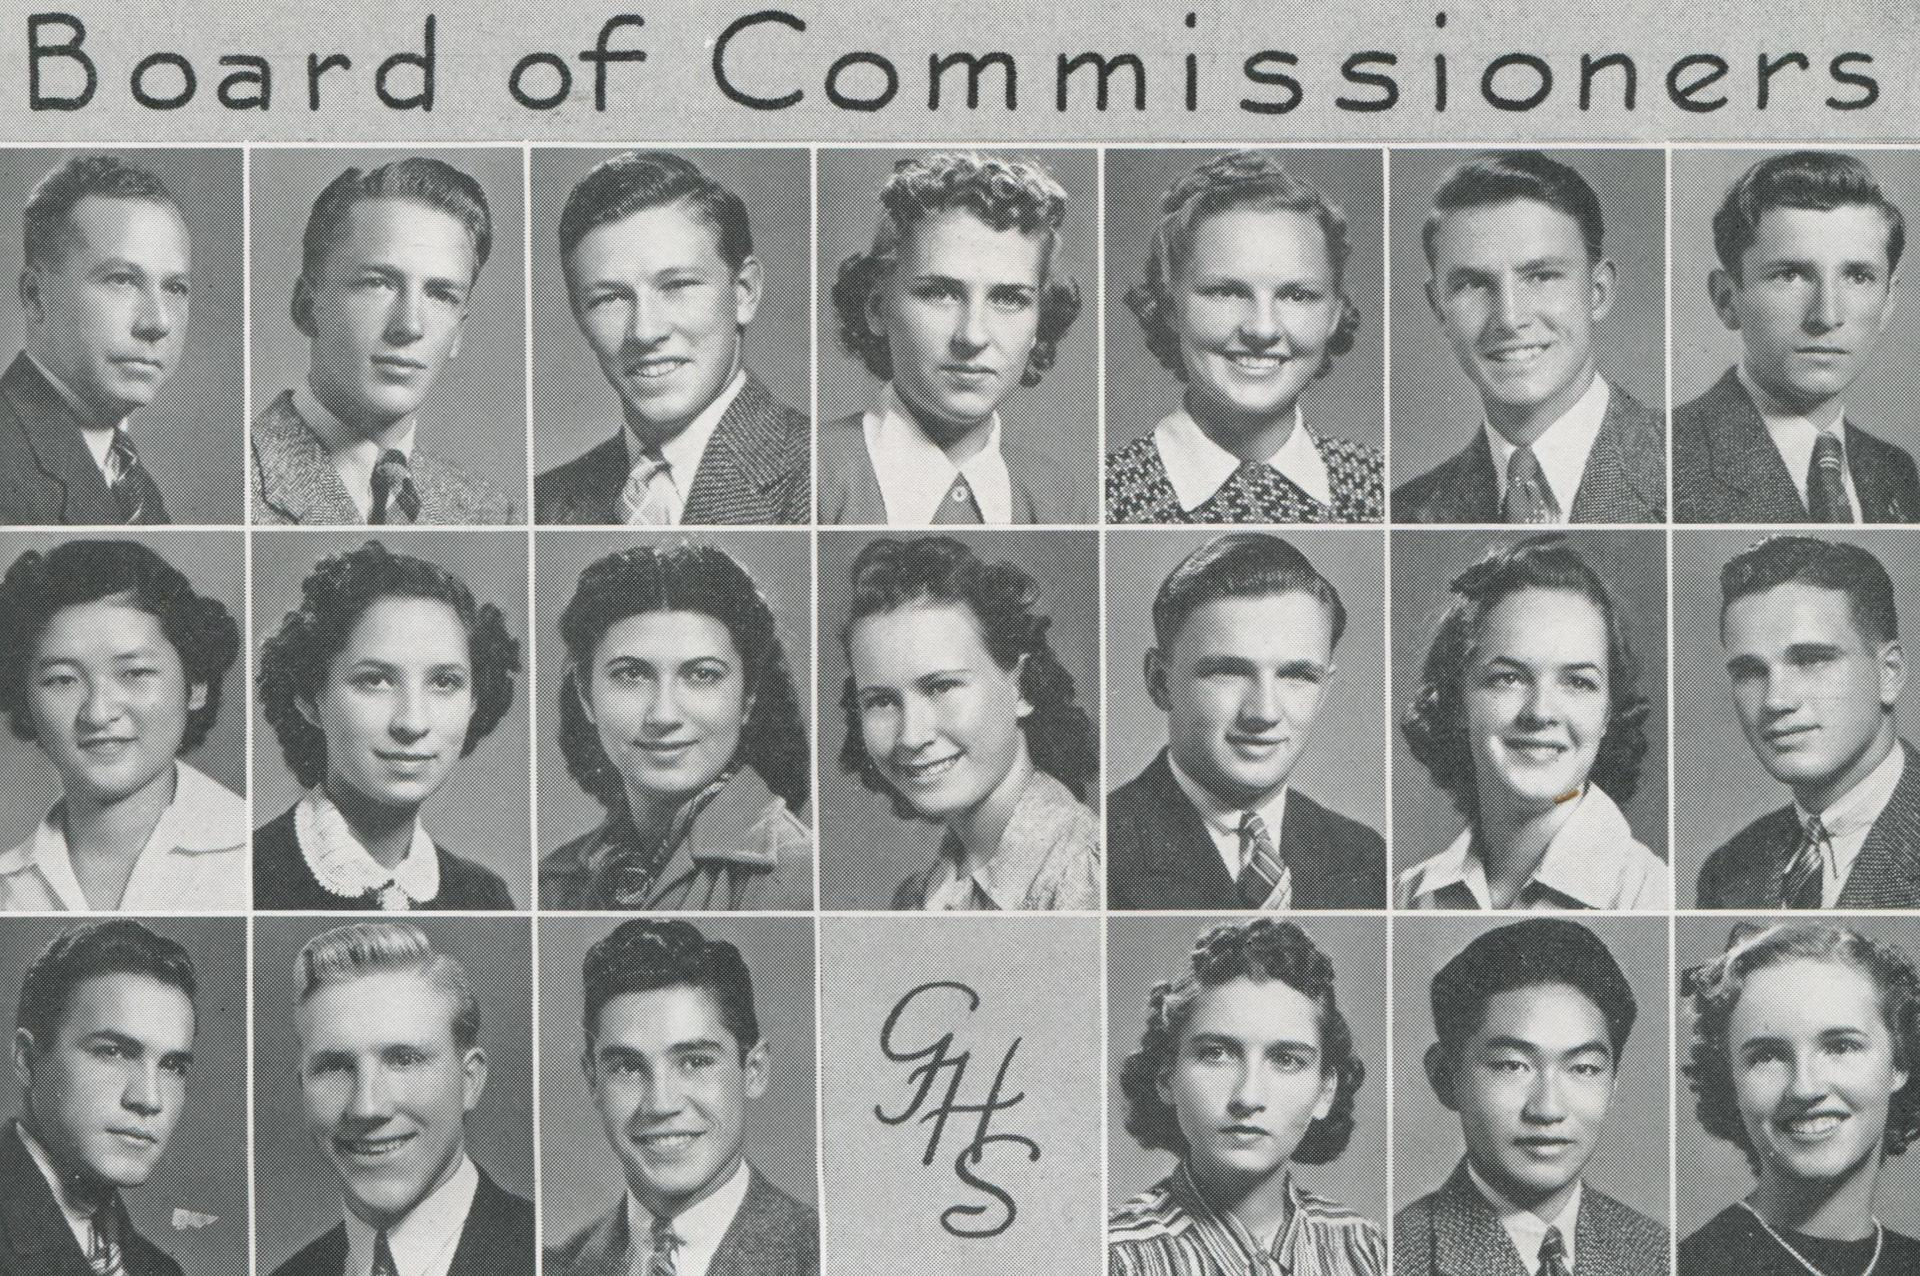 Bill is top row, second from left